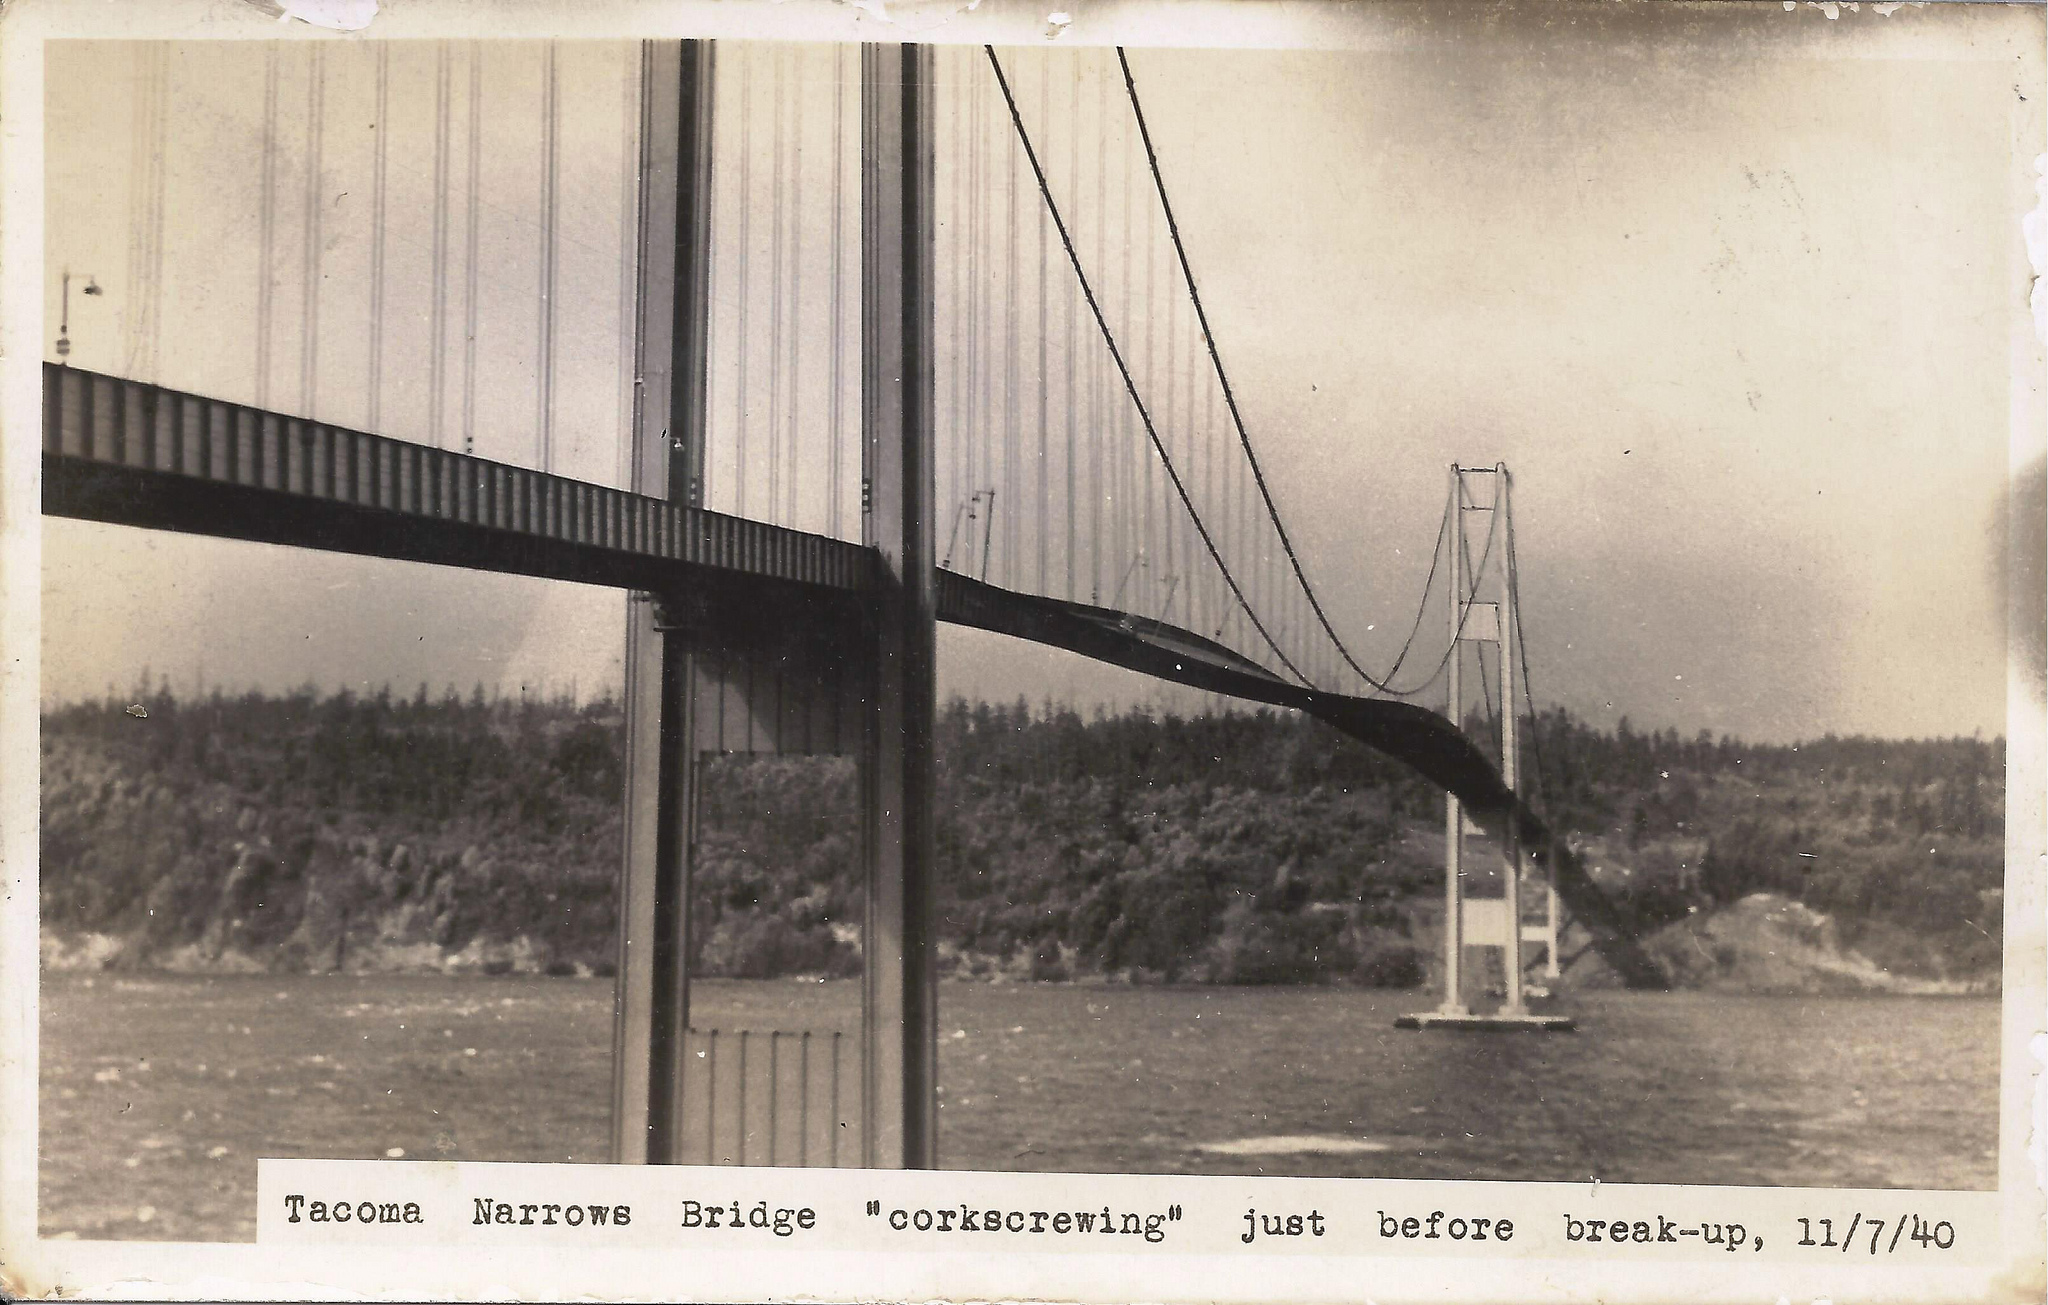 tacoma narrows bridge collapse essay